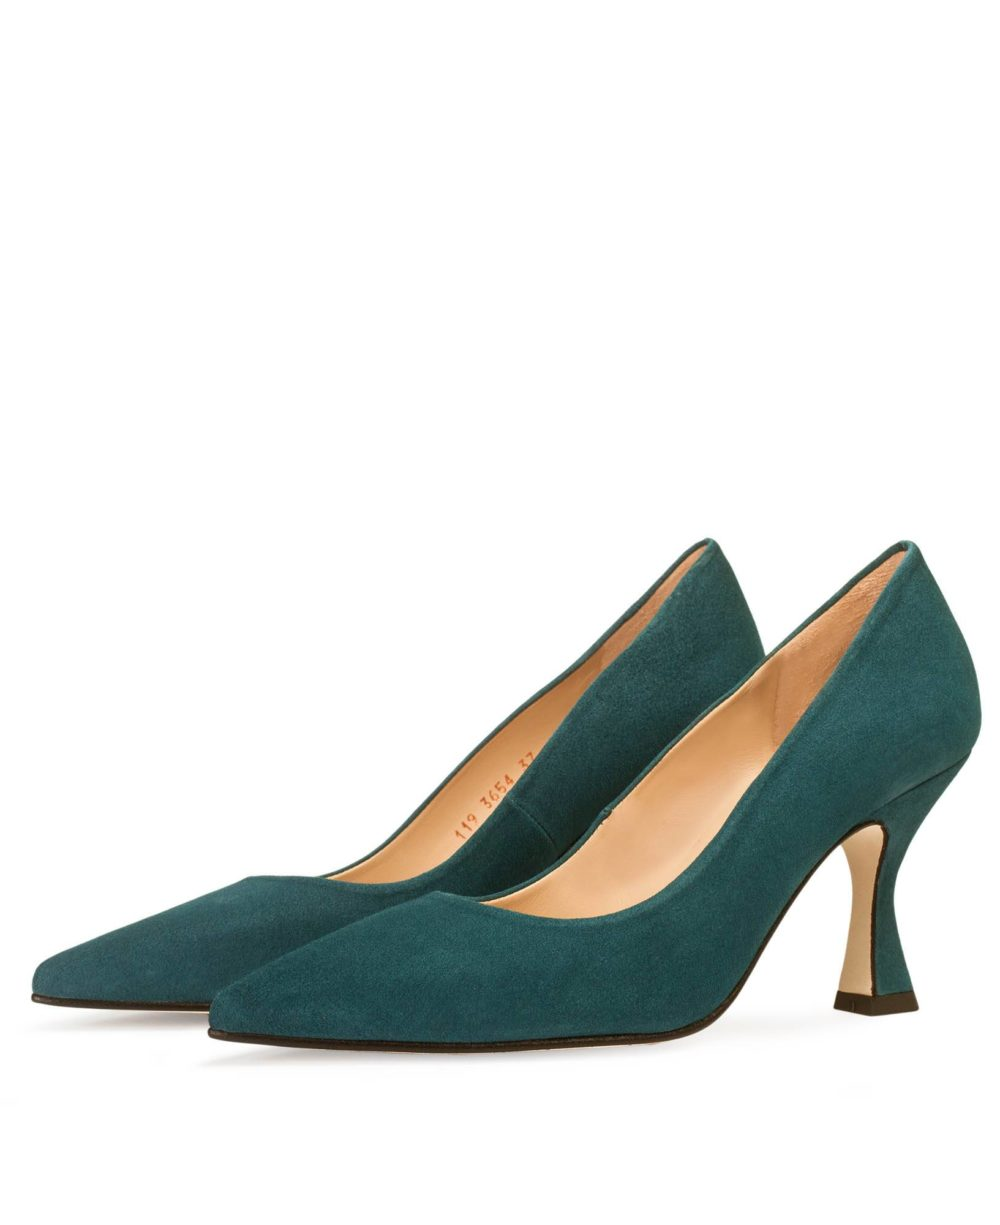 Leather Pumps P-3654 Marta Lena Suede